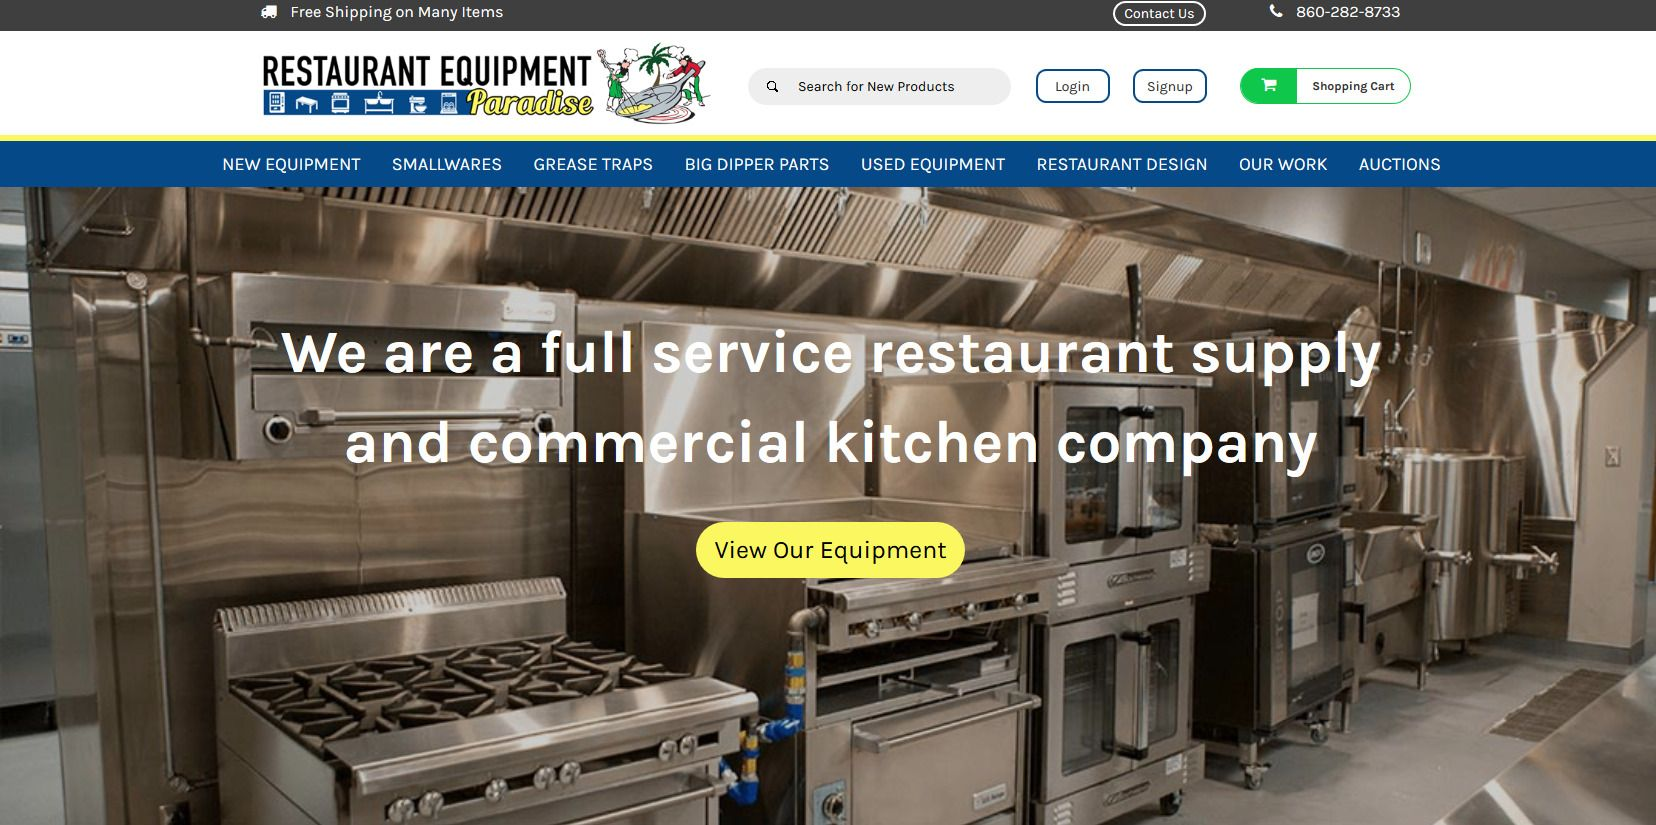 Restaurant Equipment Paradise Launches New Website